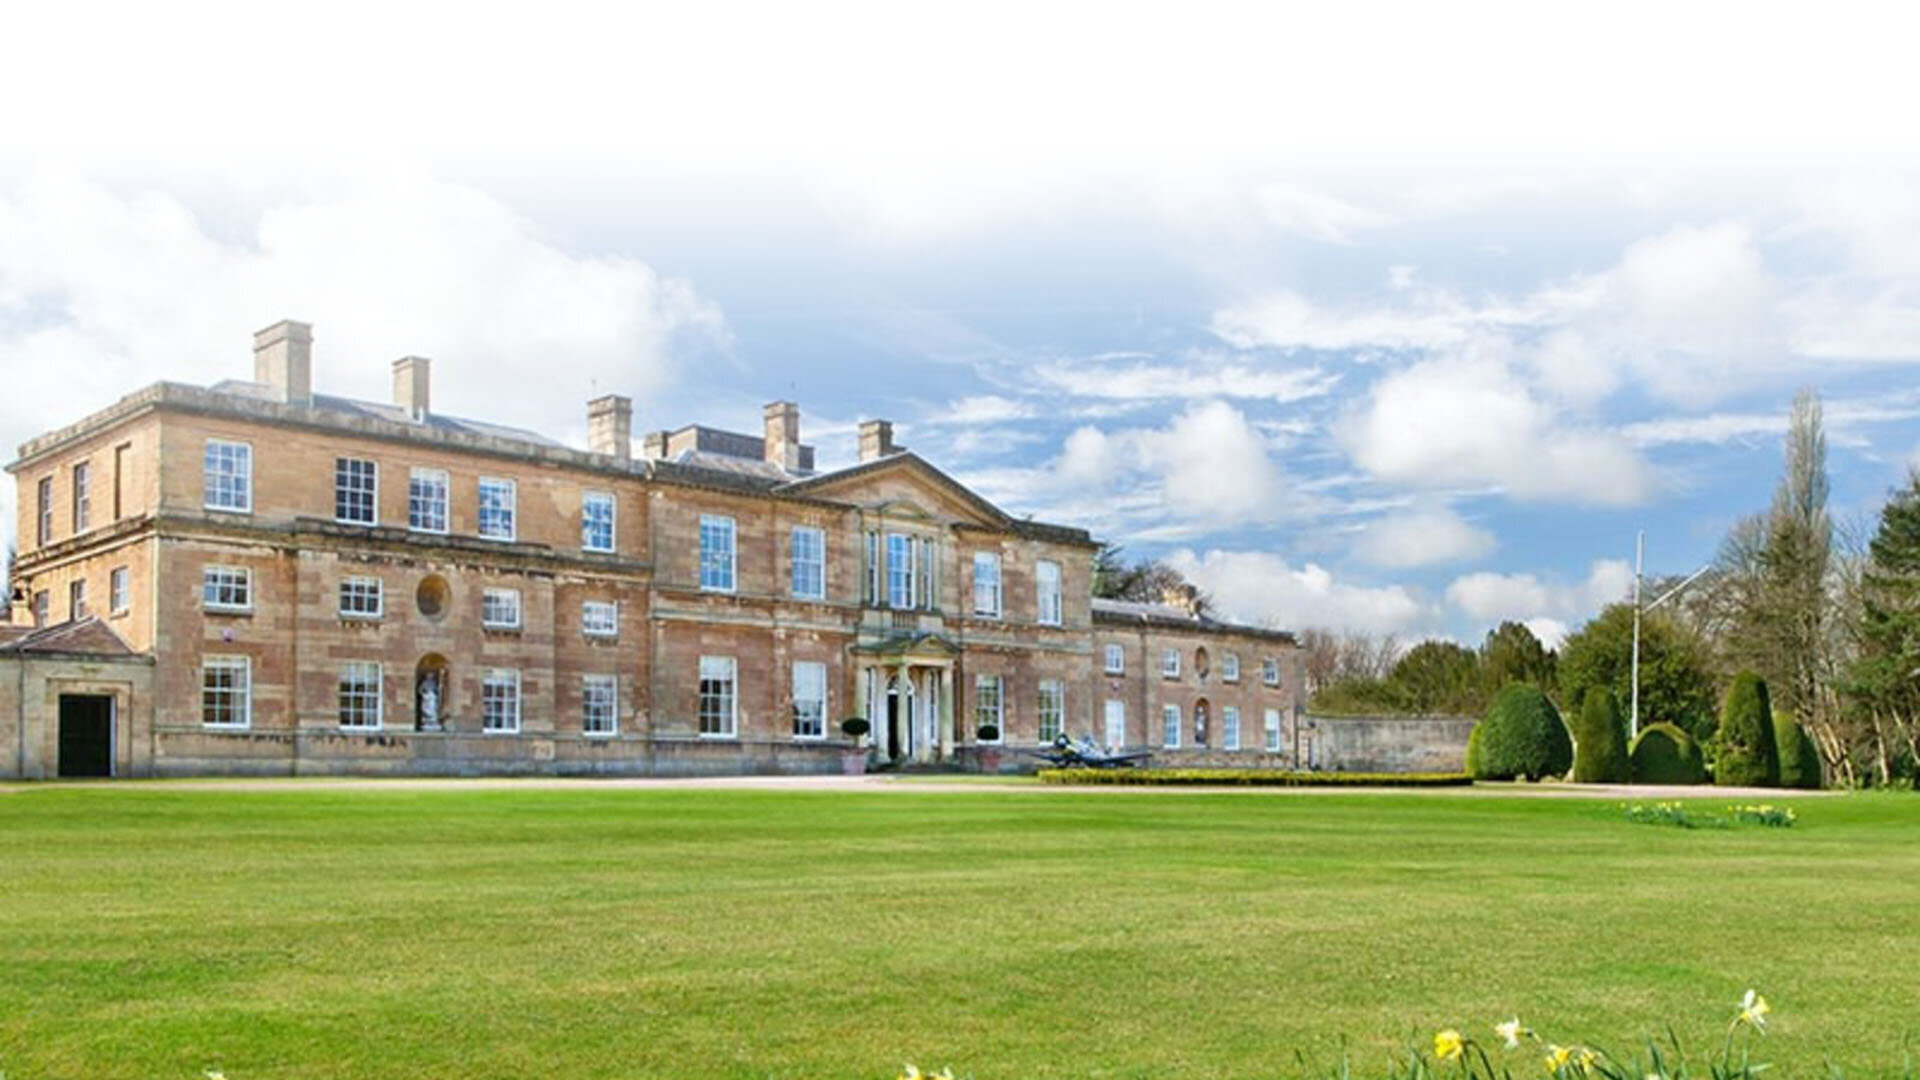 Bowcliffe Hall fuera